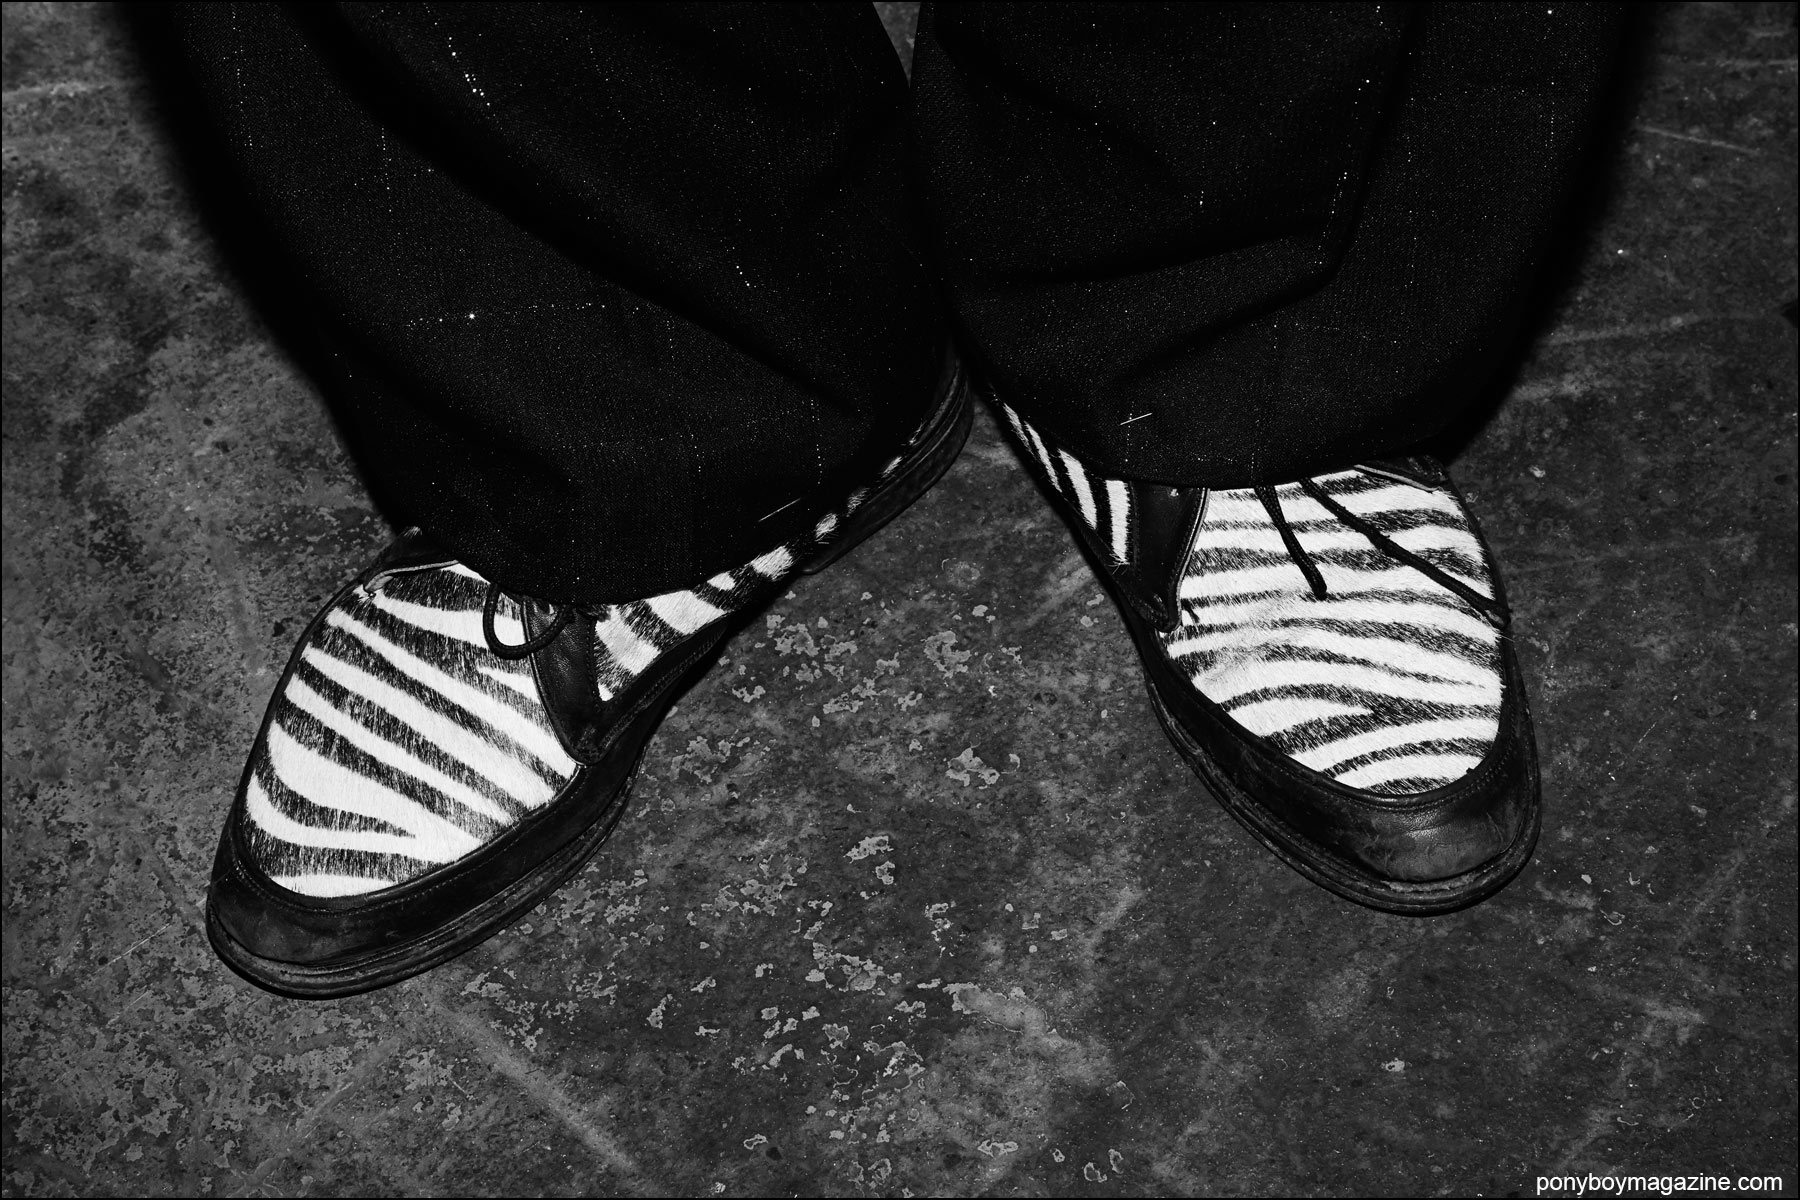 Wild zebra men's shoes on rockabilly performer Will Lizarraga. Photographed at Hula Rock Vol 2 in New York City by Alexander Thompson for Ponyboy magazine NY.